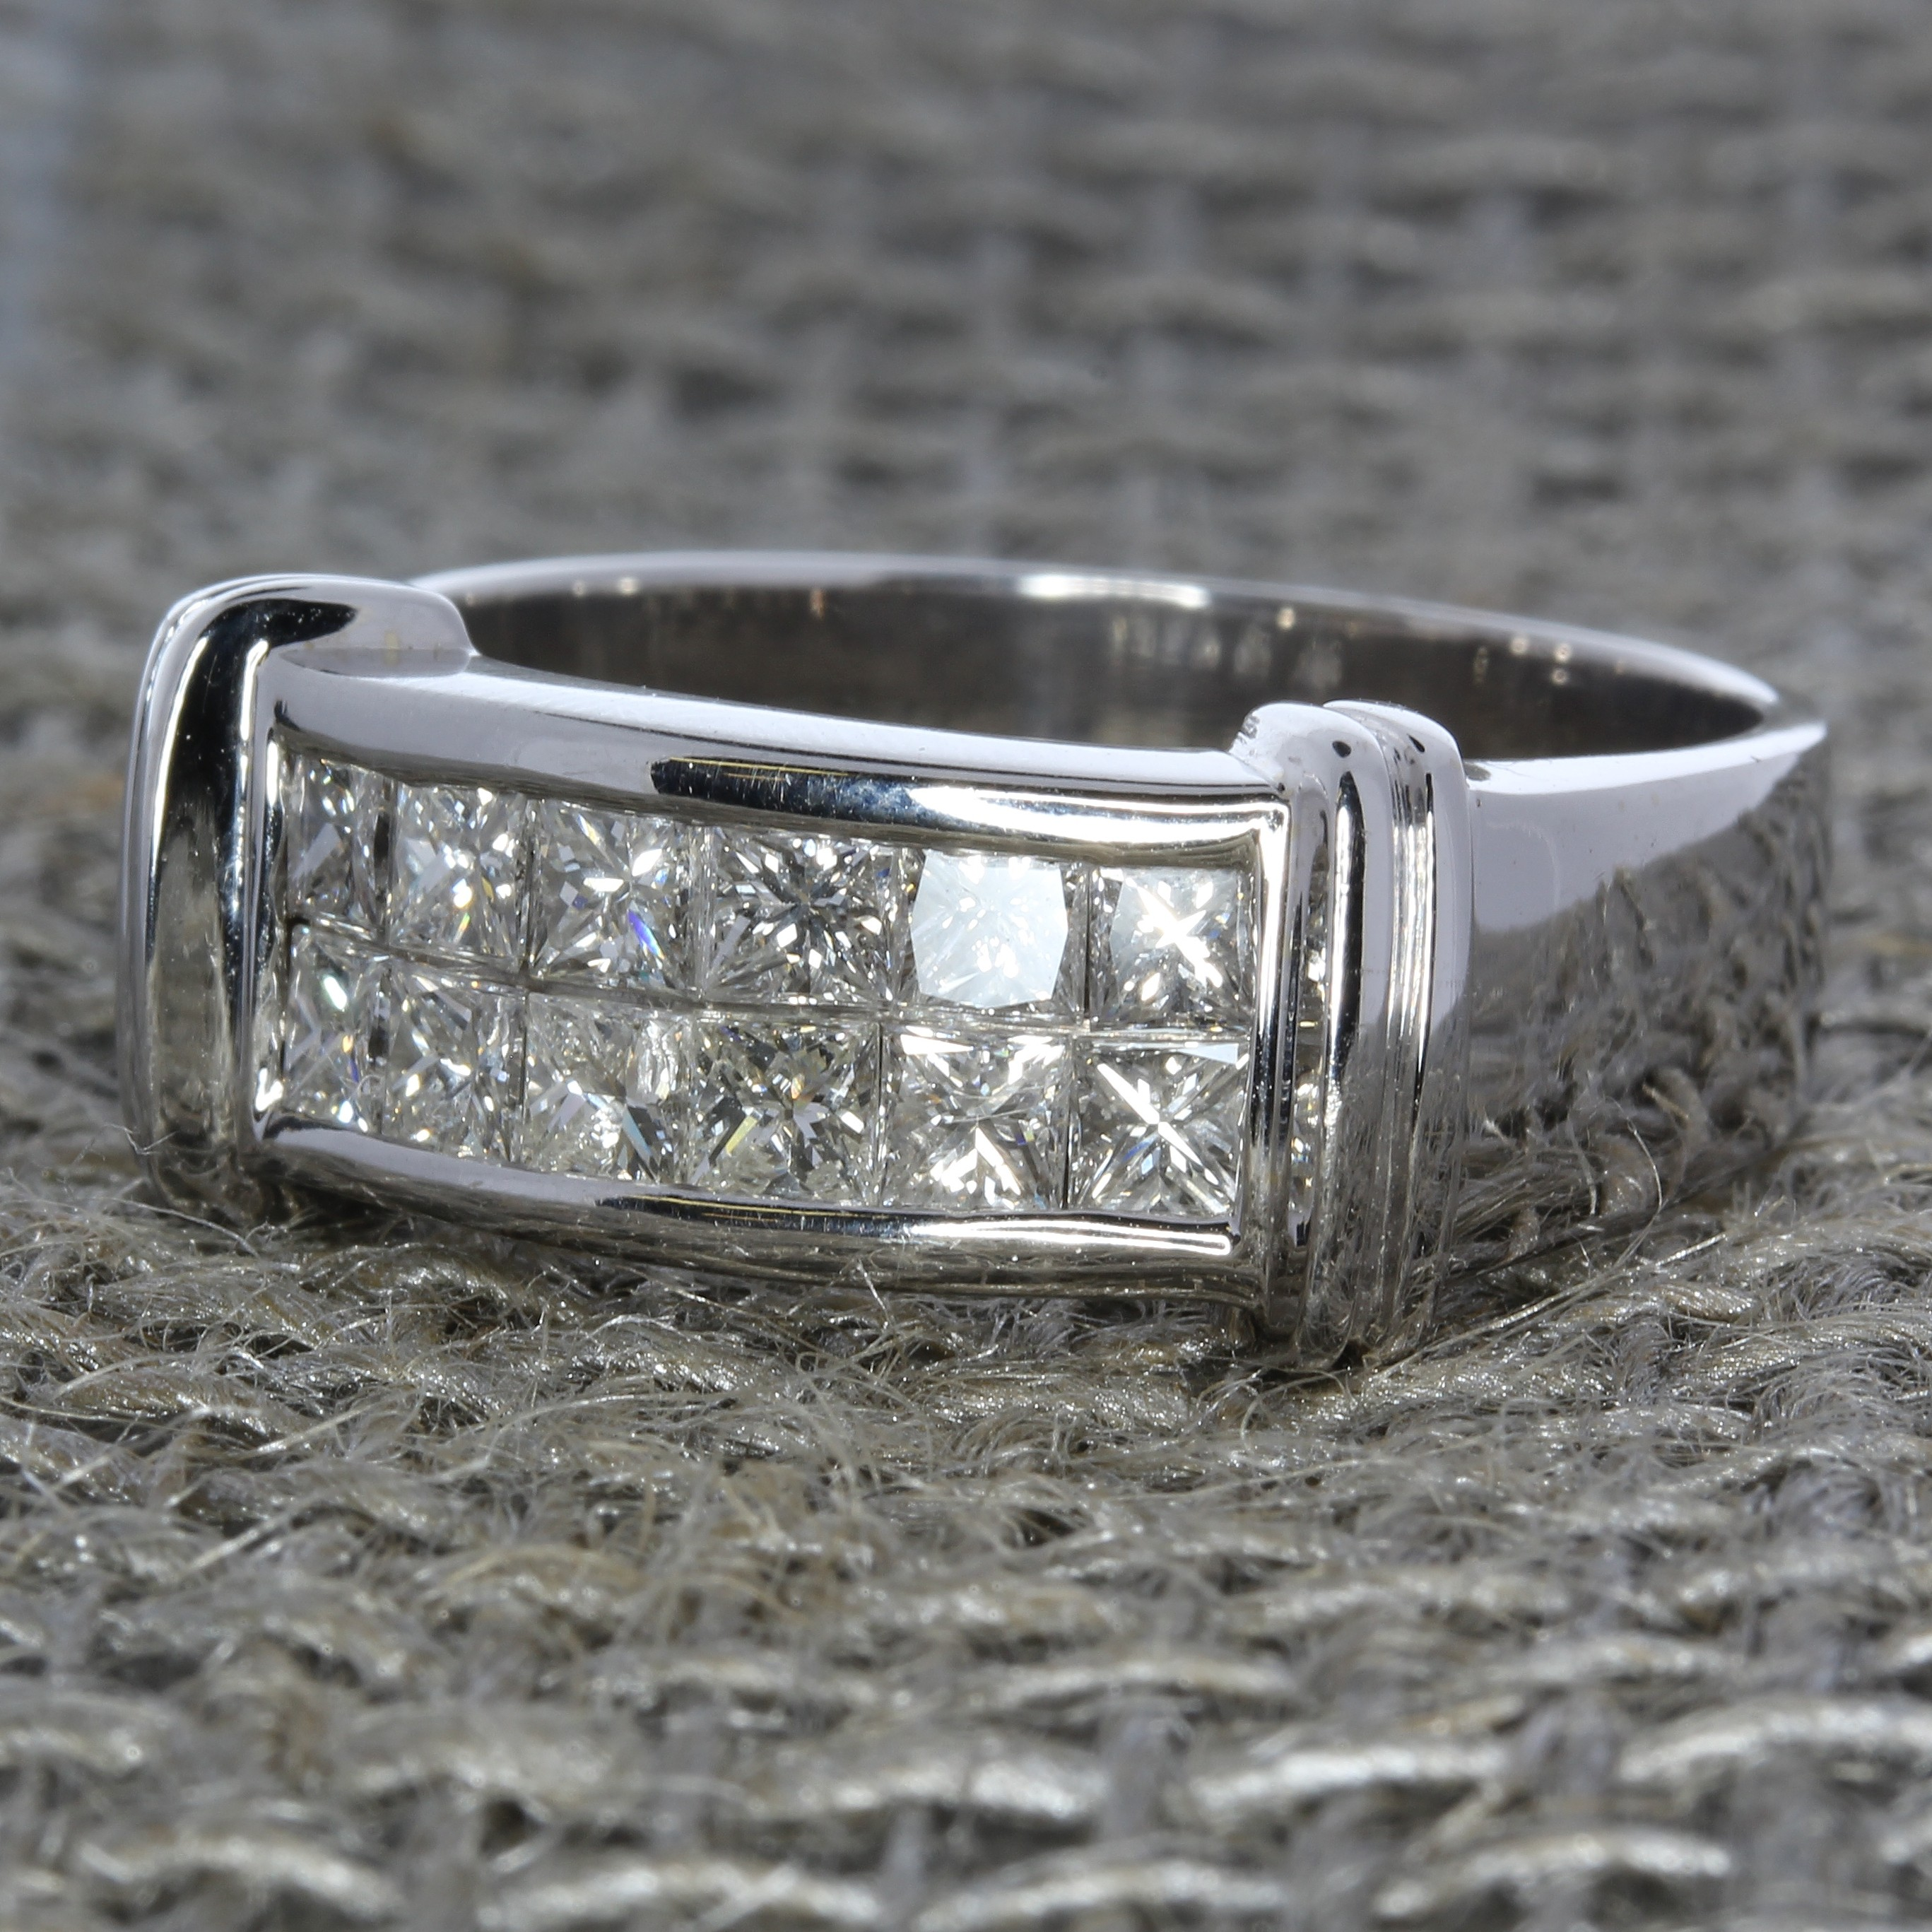 Vintage 18k white gold men's ring with 2 rows of princess cut diamonds